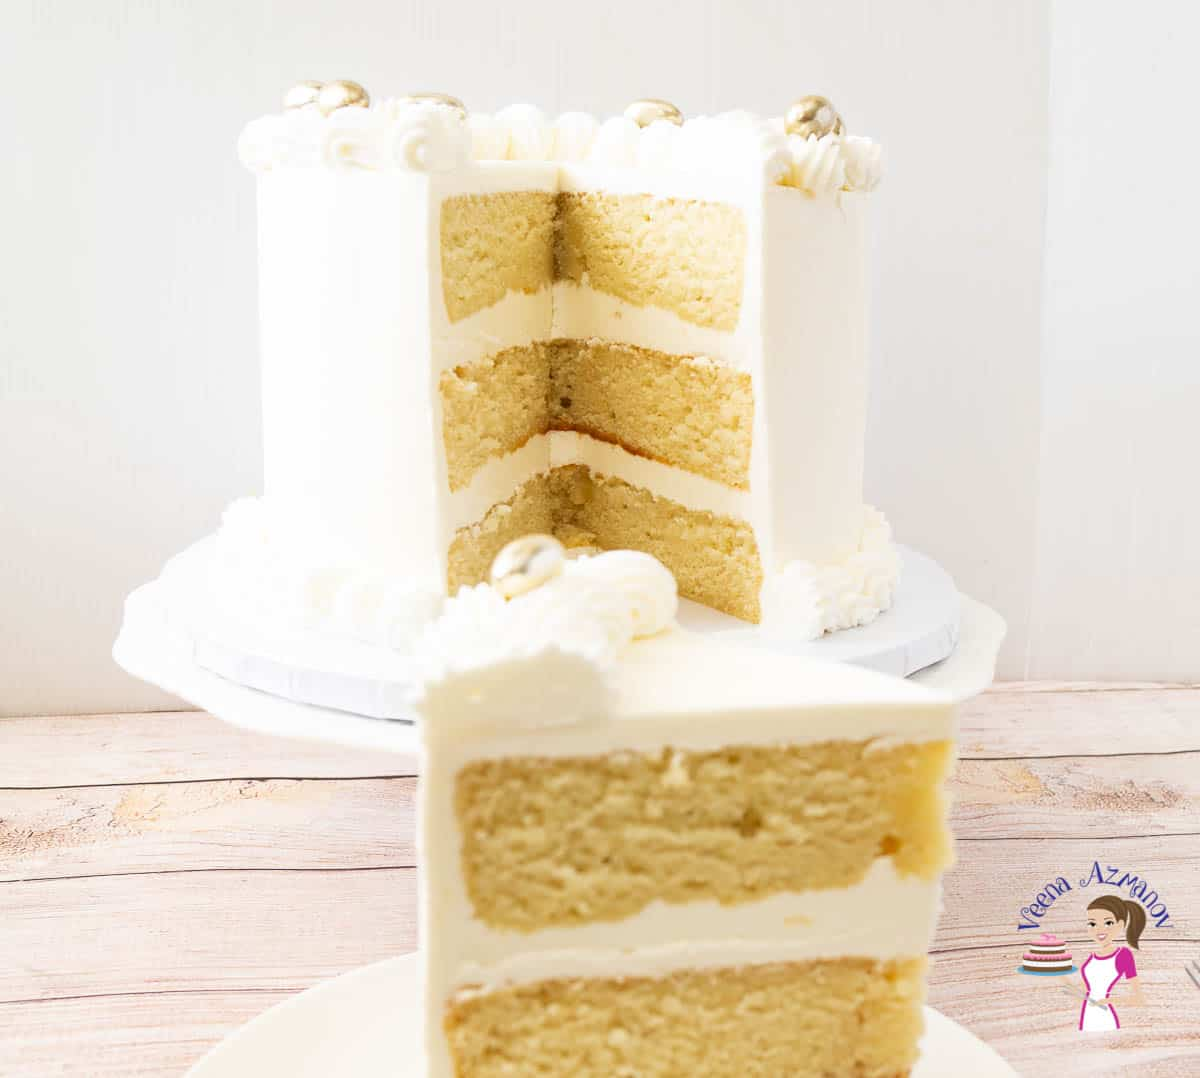 A white wedding cake on a cake stand with a slice of the cake on a plate.